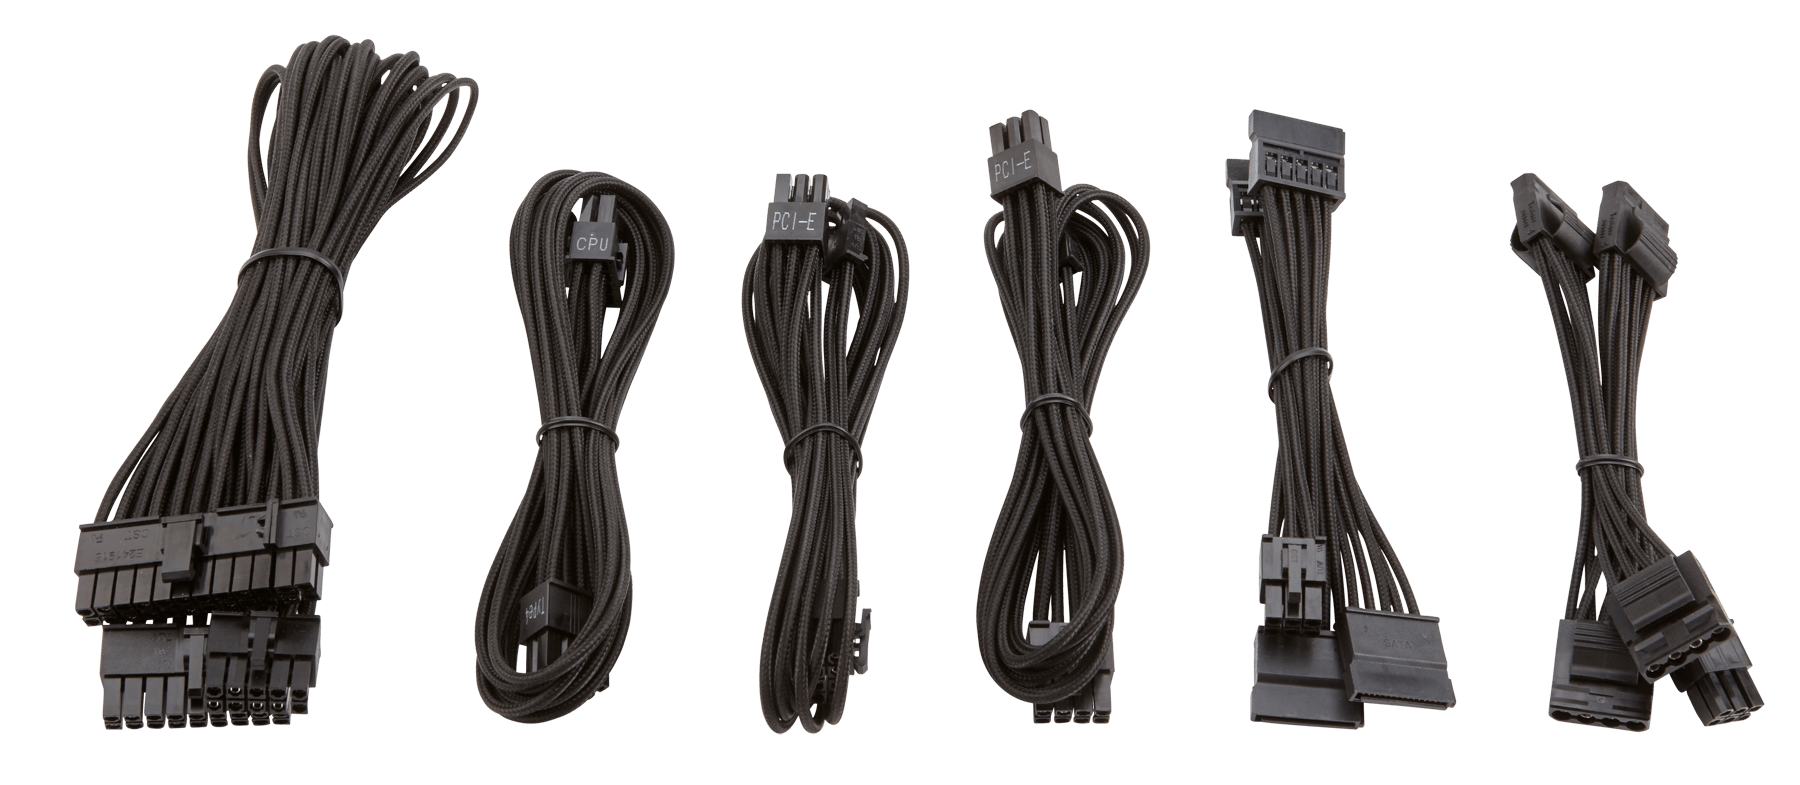 hight resolution of the paracord material allows for easy installation and cable routing especially in small form factor systems where space is limited